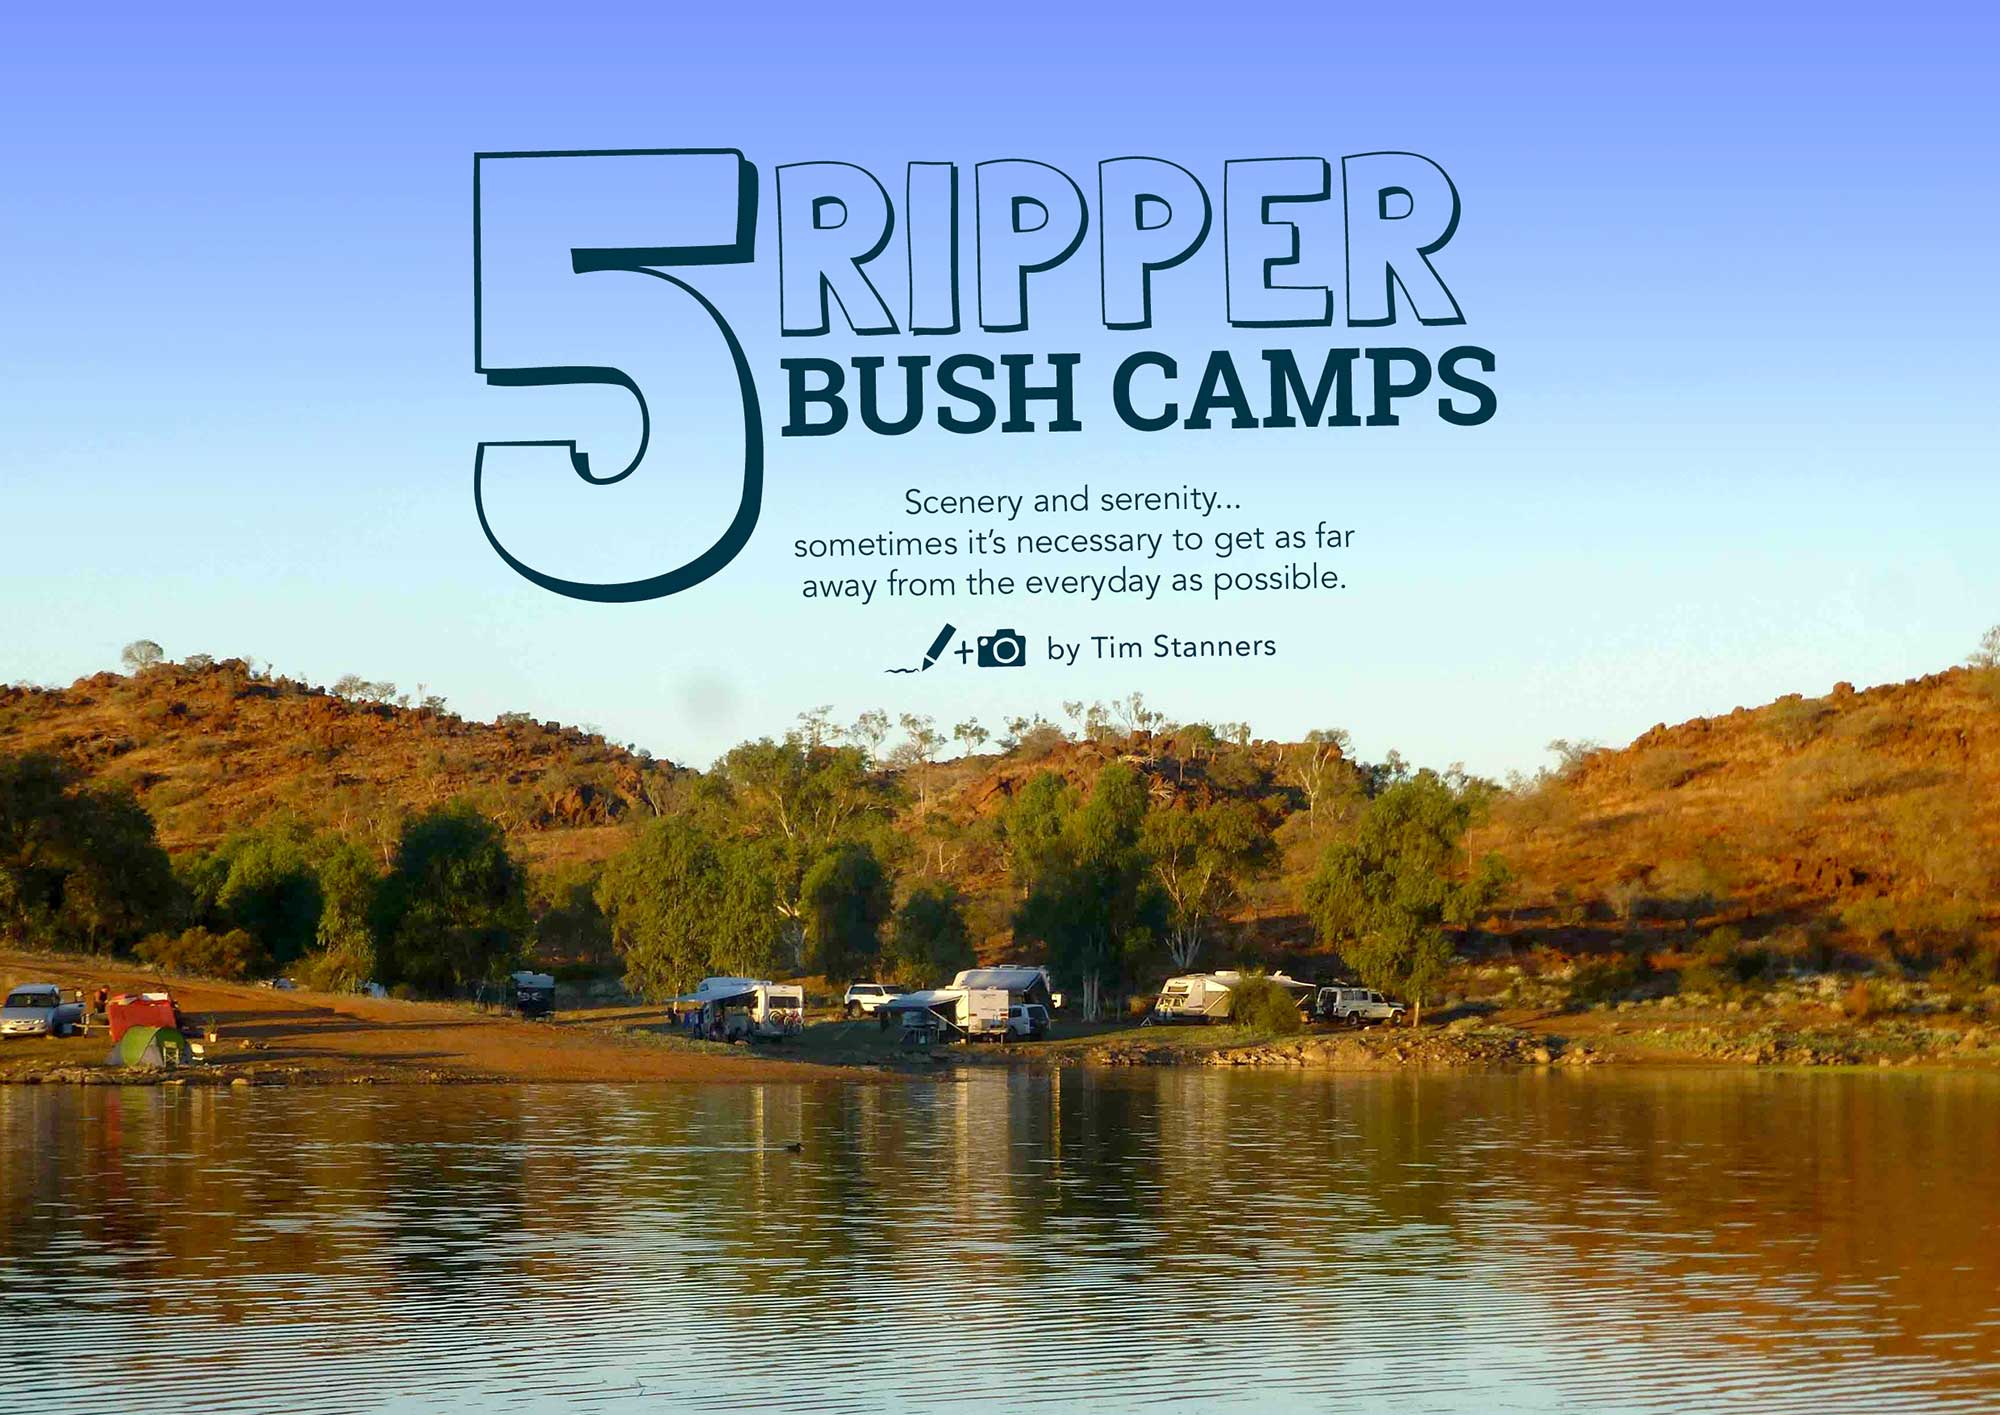 5 Ripper Bush Camps: #002